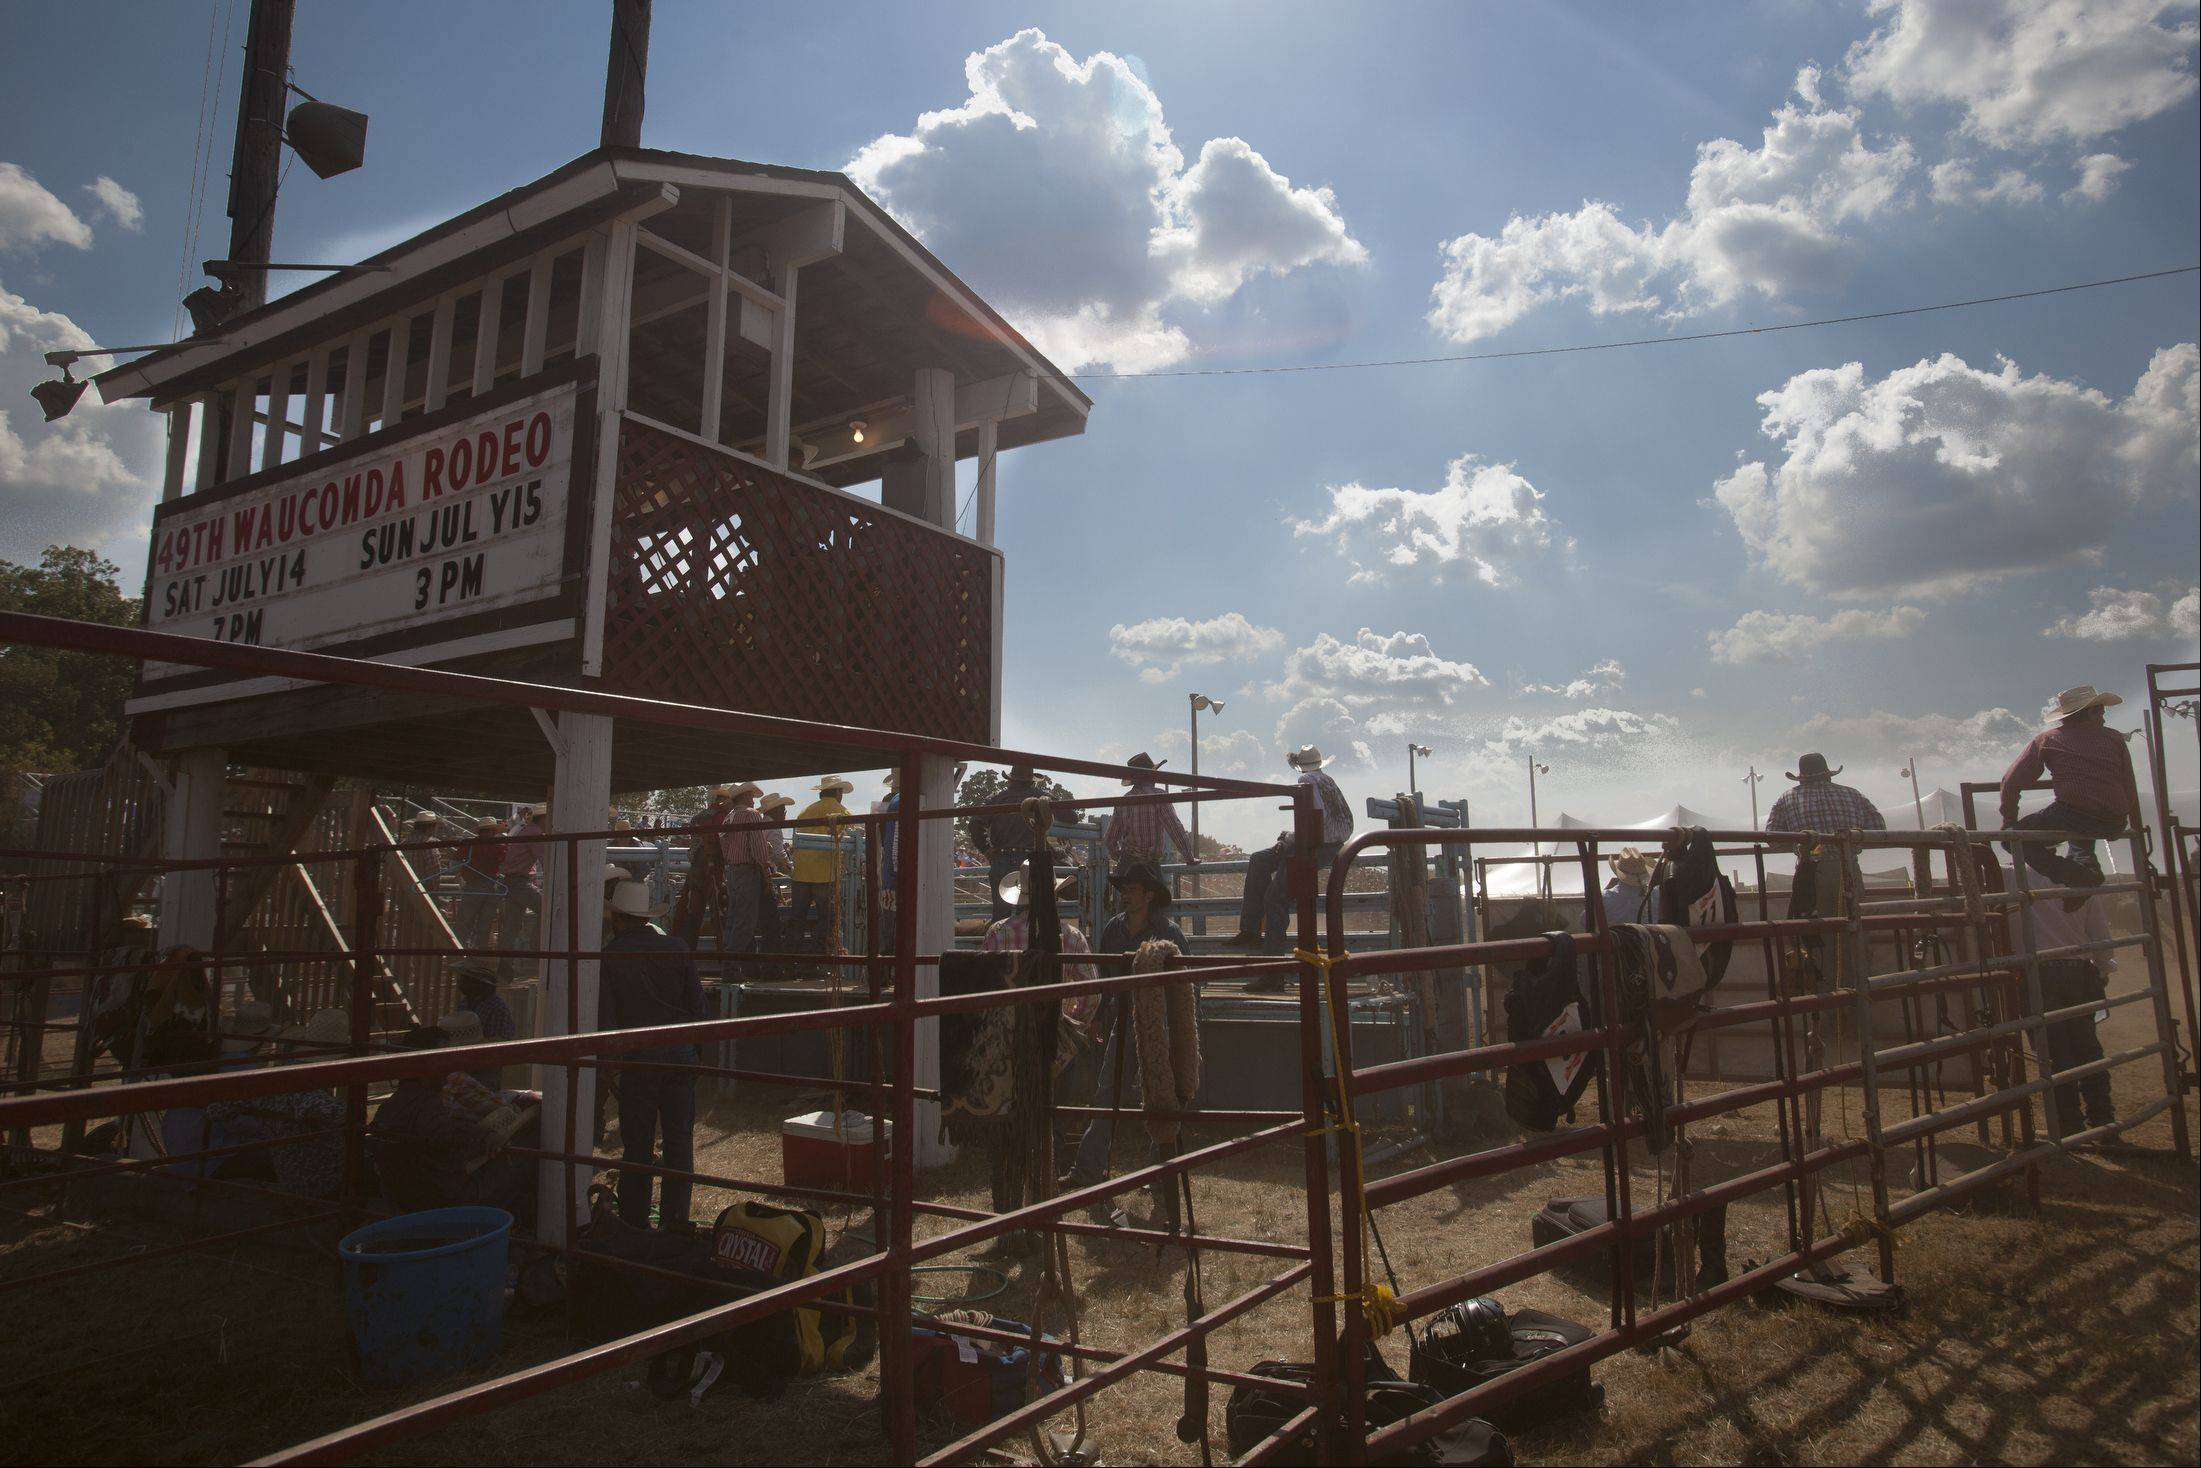 Cowboys sit around and wait their turn Sunday during the 49th IPRA Championship Rodeo in Wauconda.